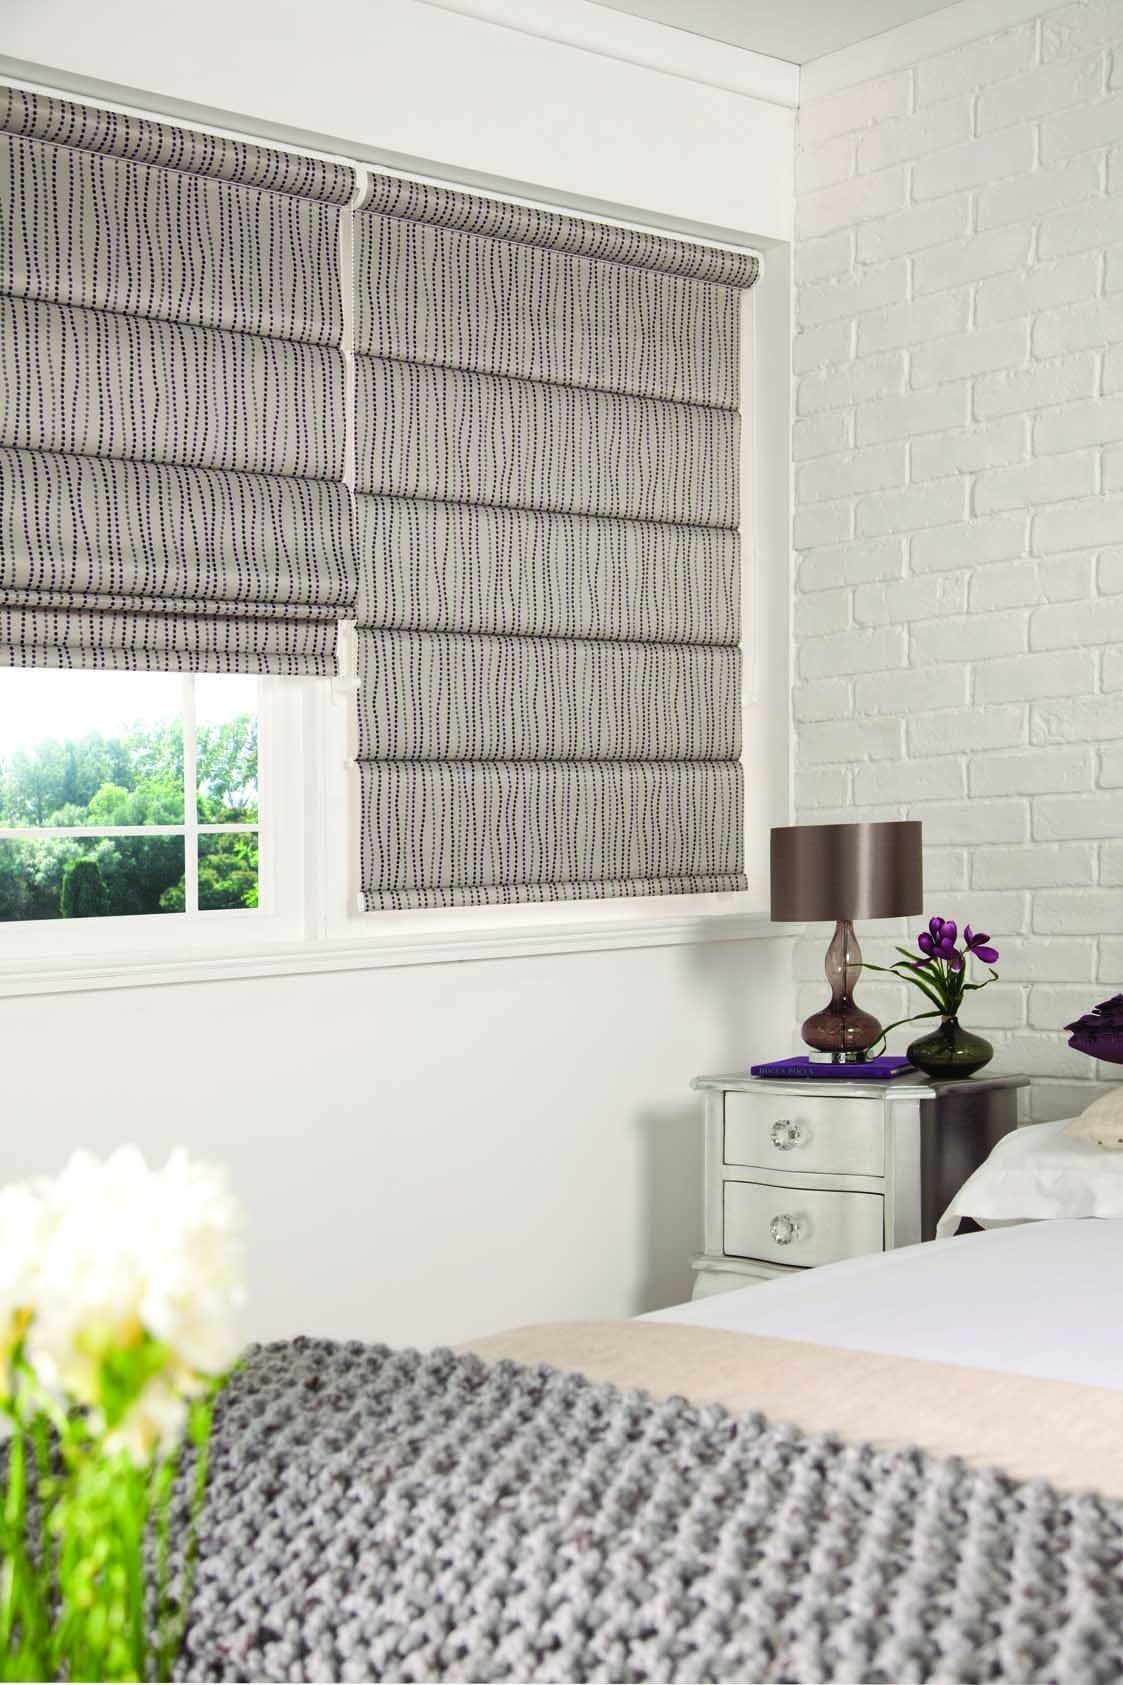 Roman Blinds Perfect Fit For Windows Radiant Blinds Ltd